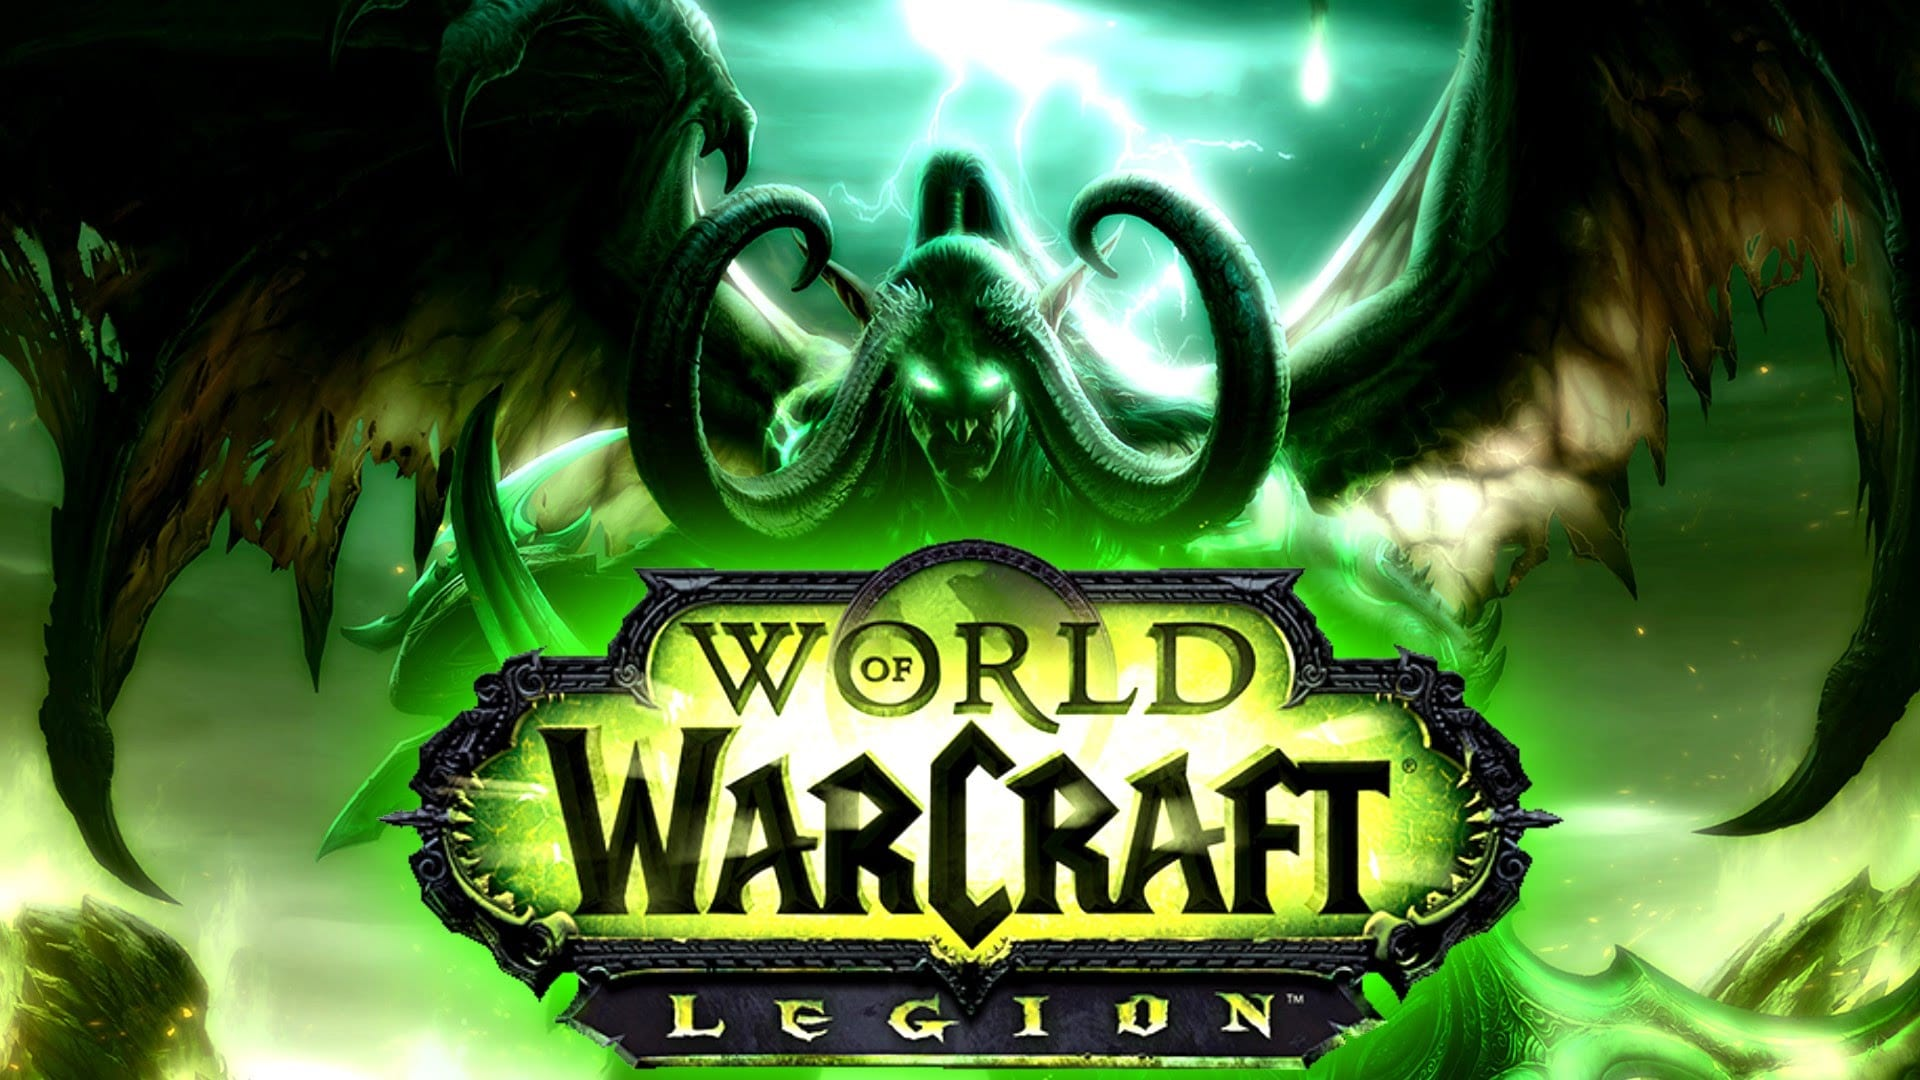 Wow expansion release date in Melbourne